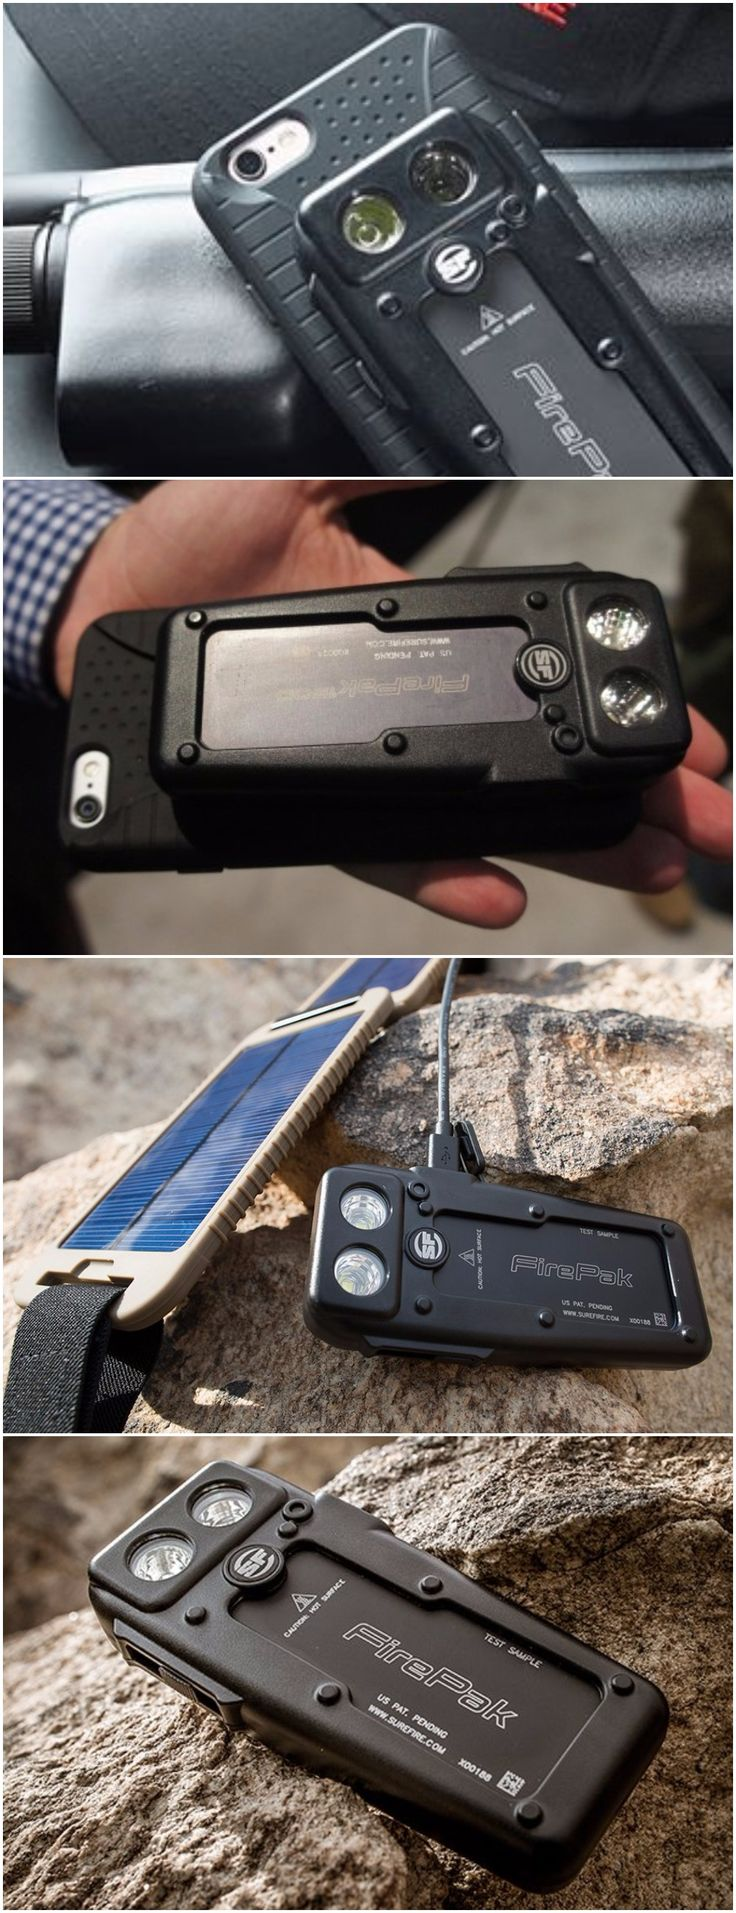 SureFire Fire Pak High Output Illuminator and Smartphone Charger, EDC Everyday Carry Gear Smartphone Flashlight and lighting